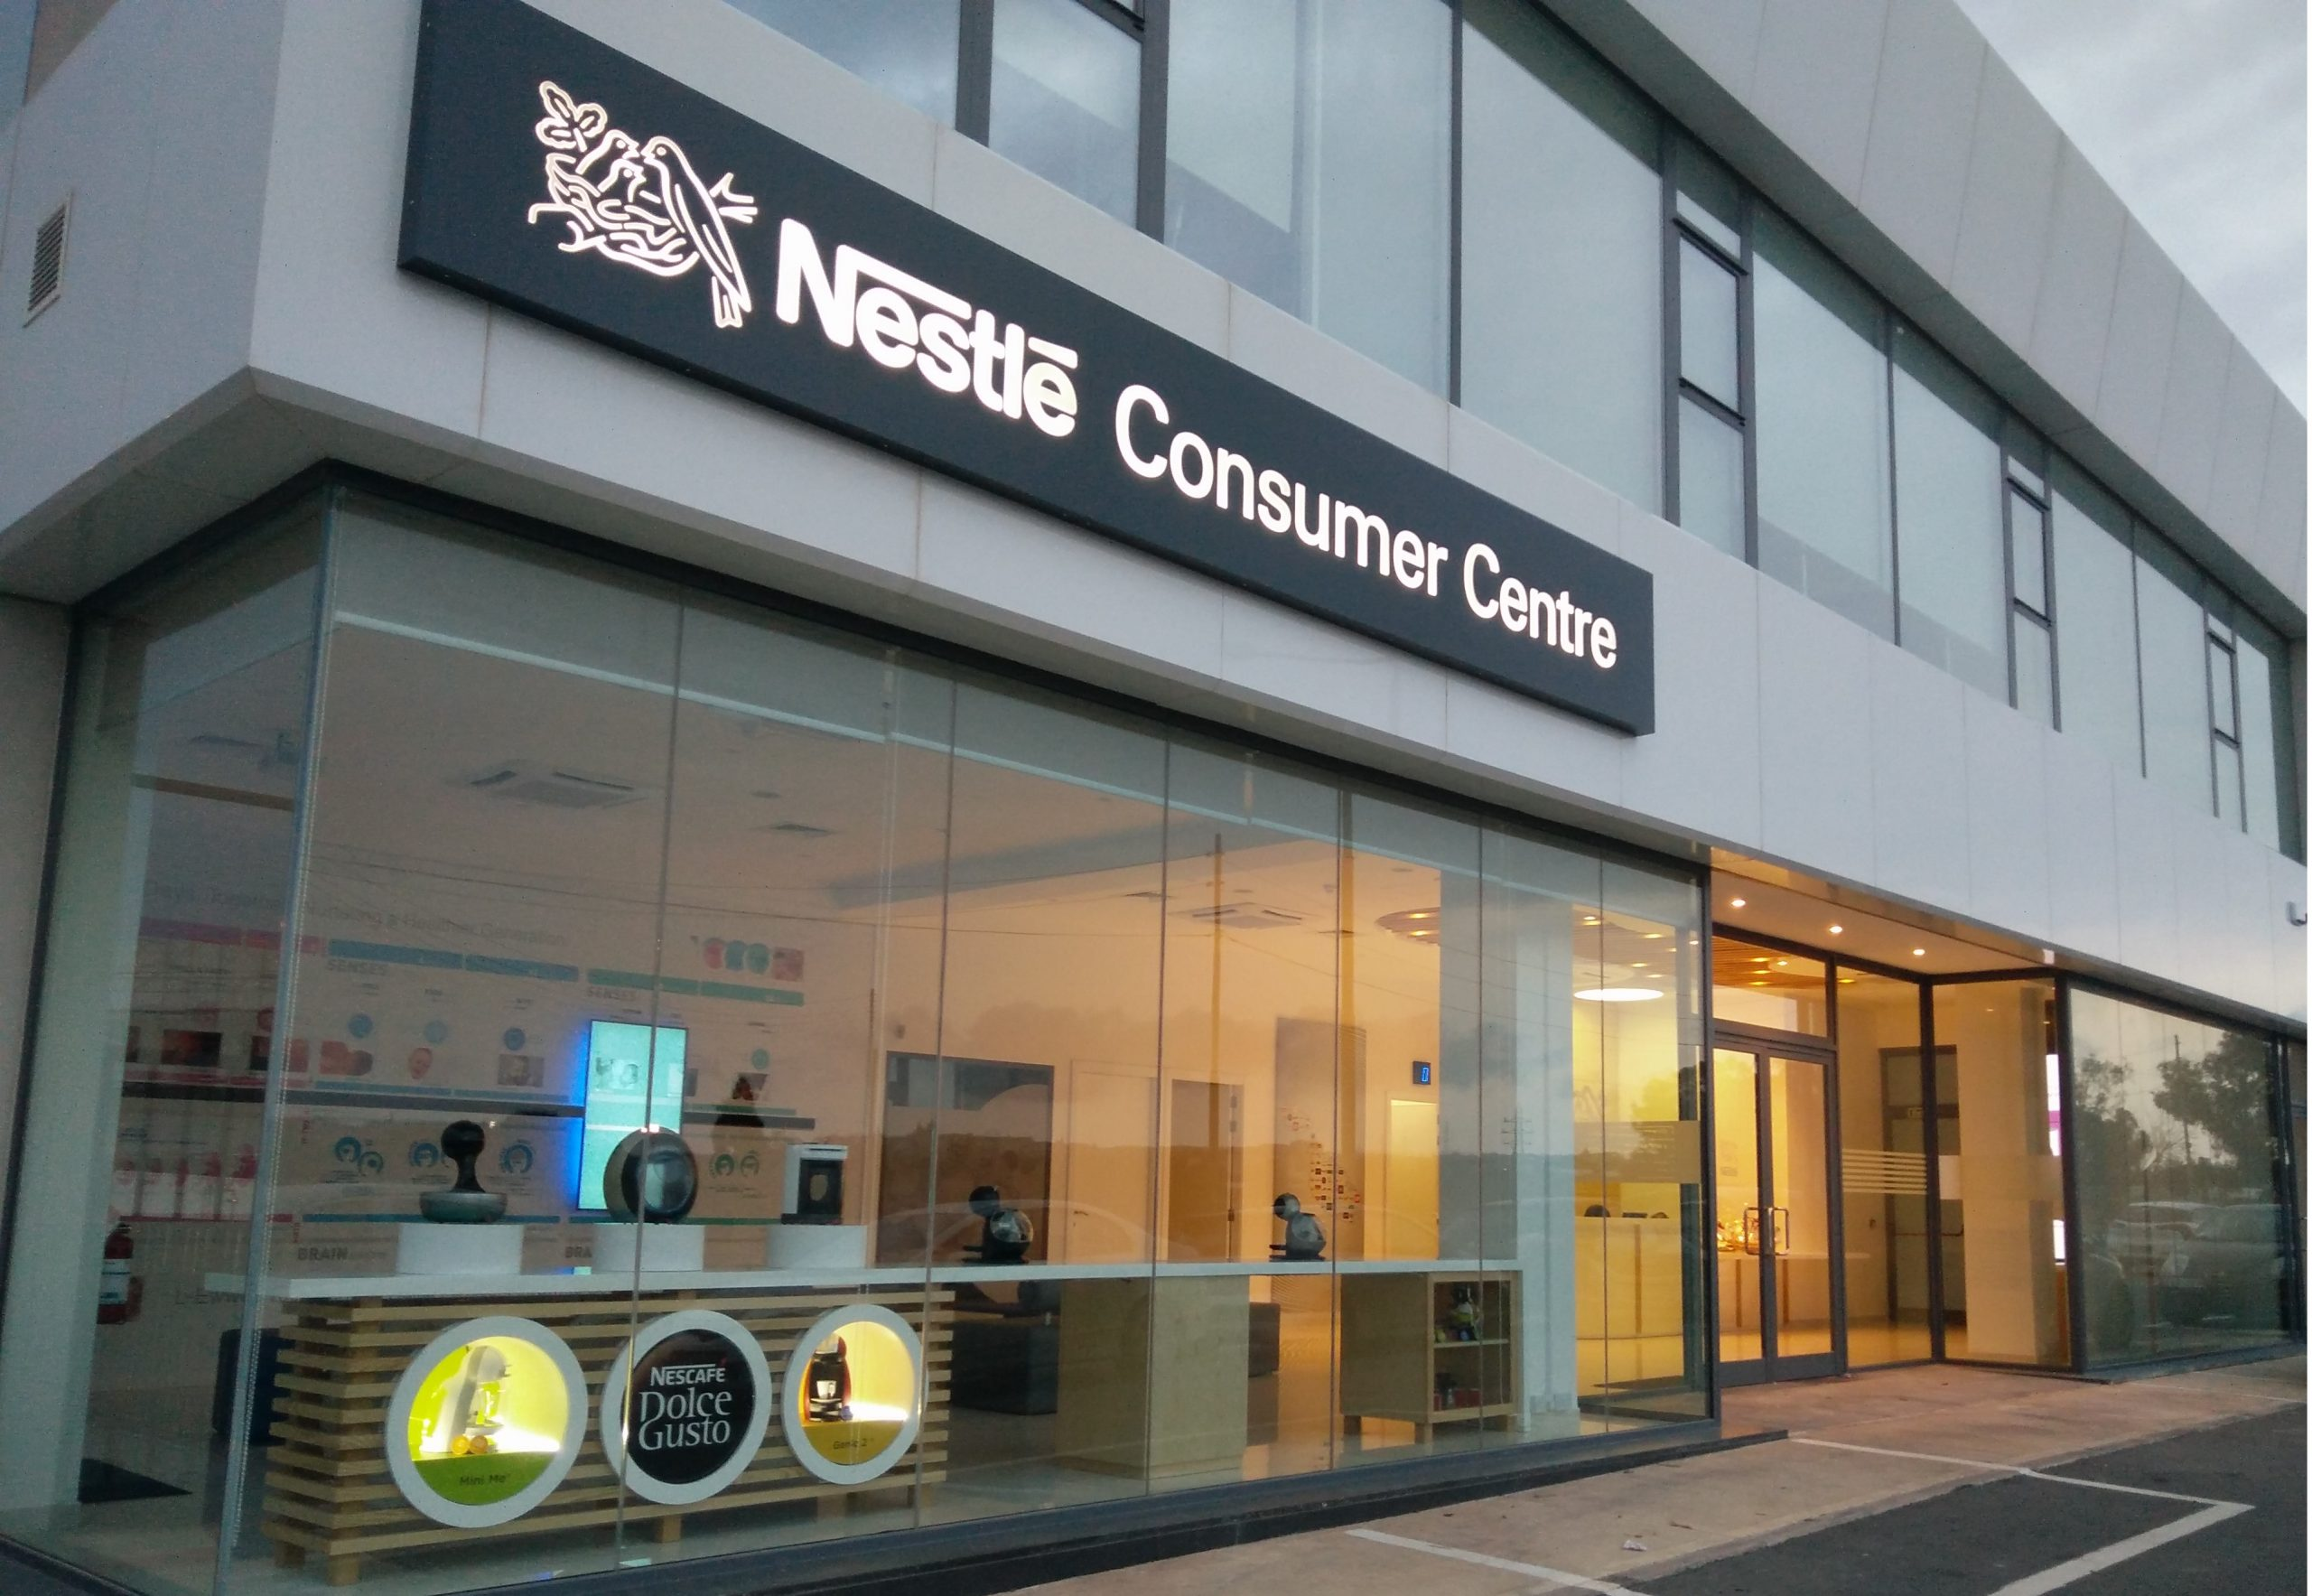 Service Center at the Nestle Consumer Centre, Lija